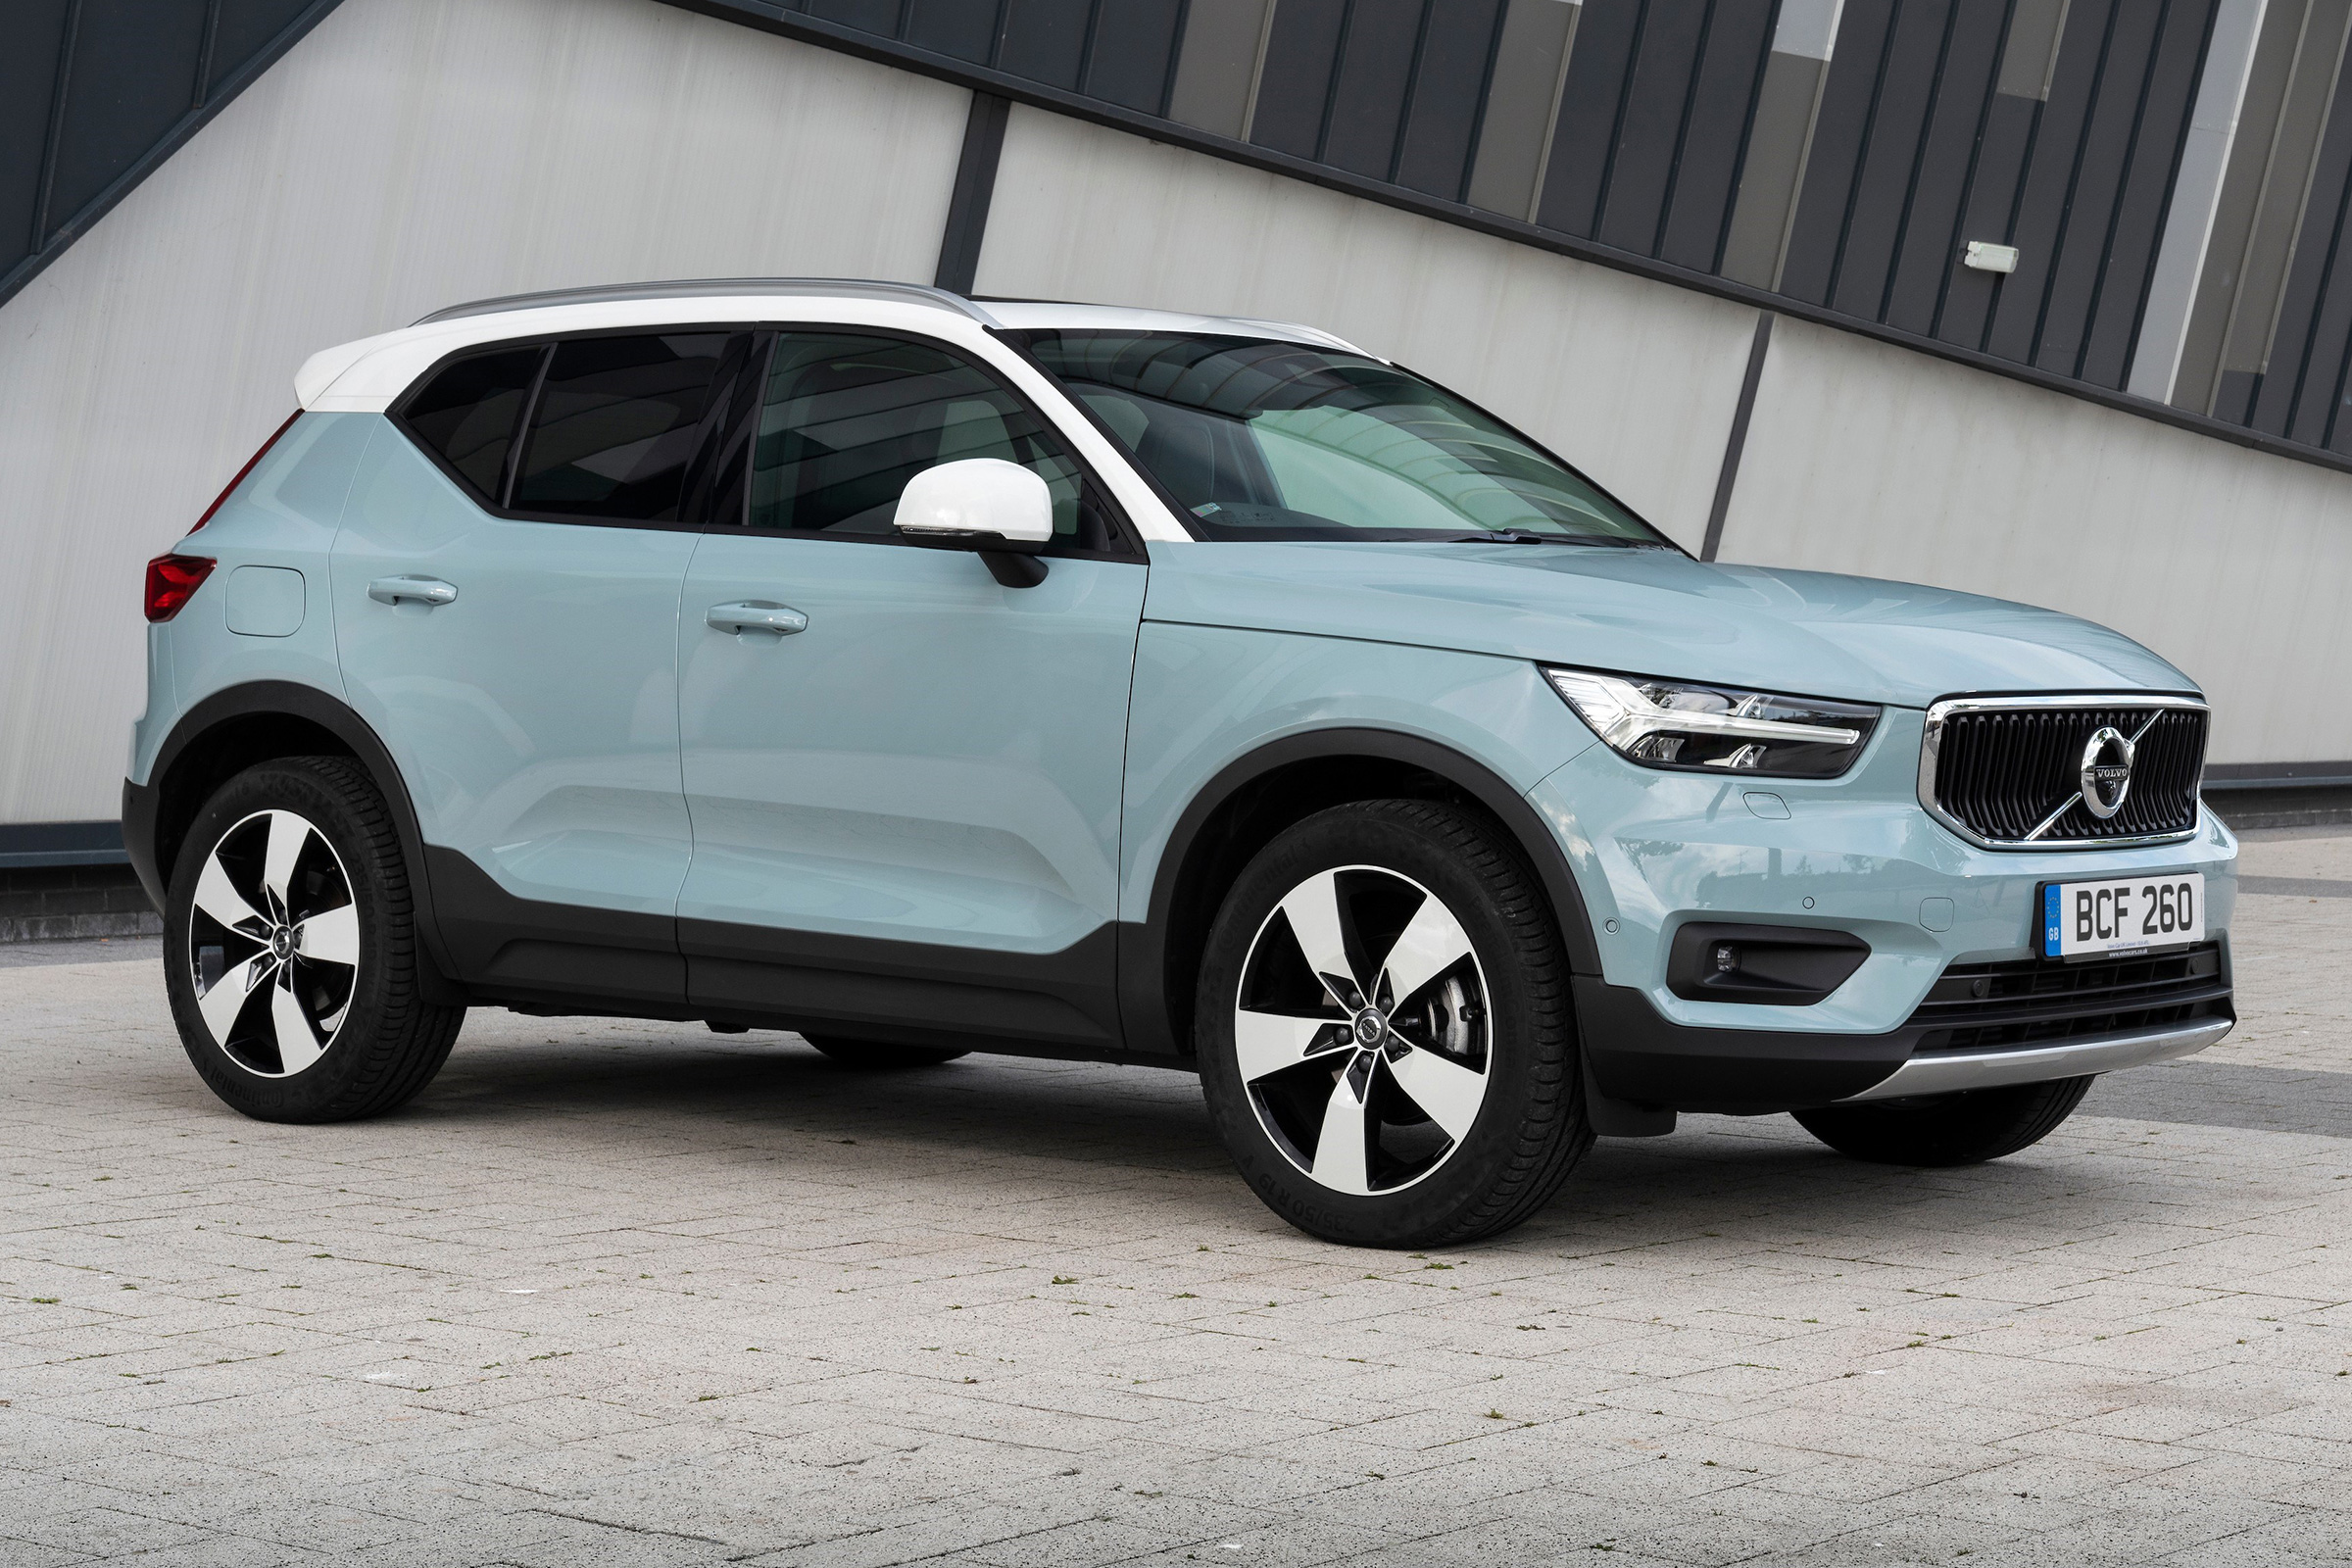 New 2020 Volvo XC40: plug-in hybrid tech, specs and ...